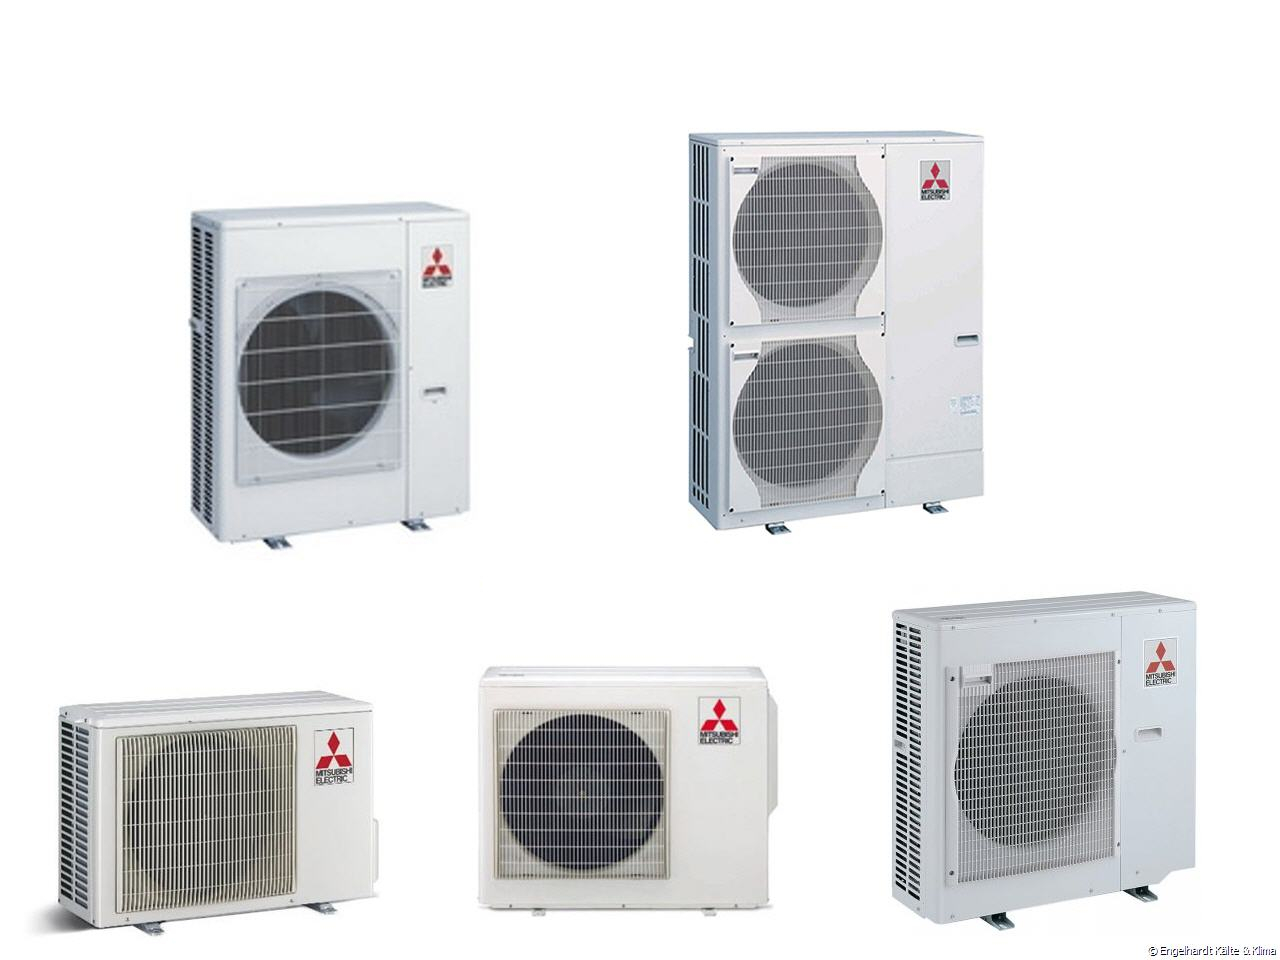 multi mitsubishi system msz outdoor example mxz compressor wall unit air kw indoor only cooling conditioner inverter heating room ge head mounted split